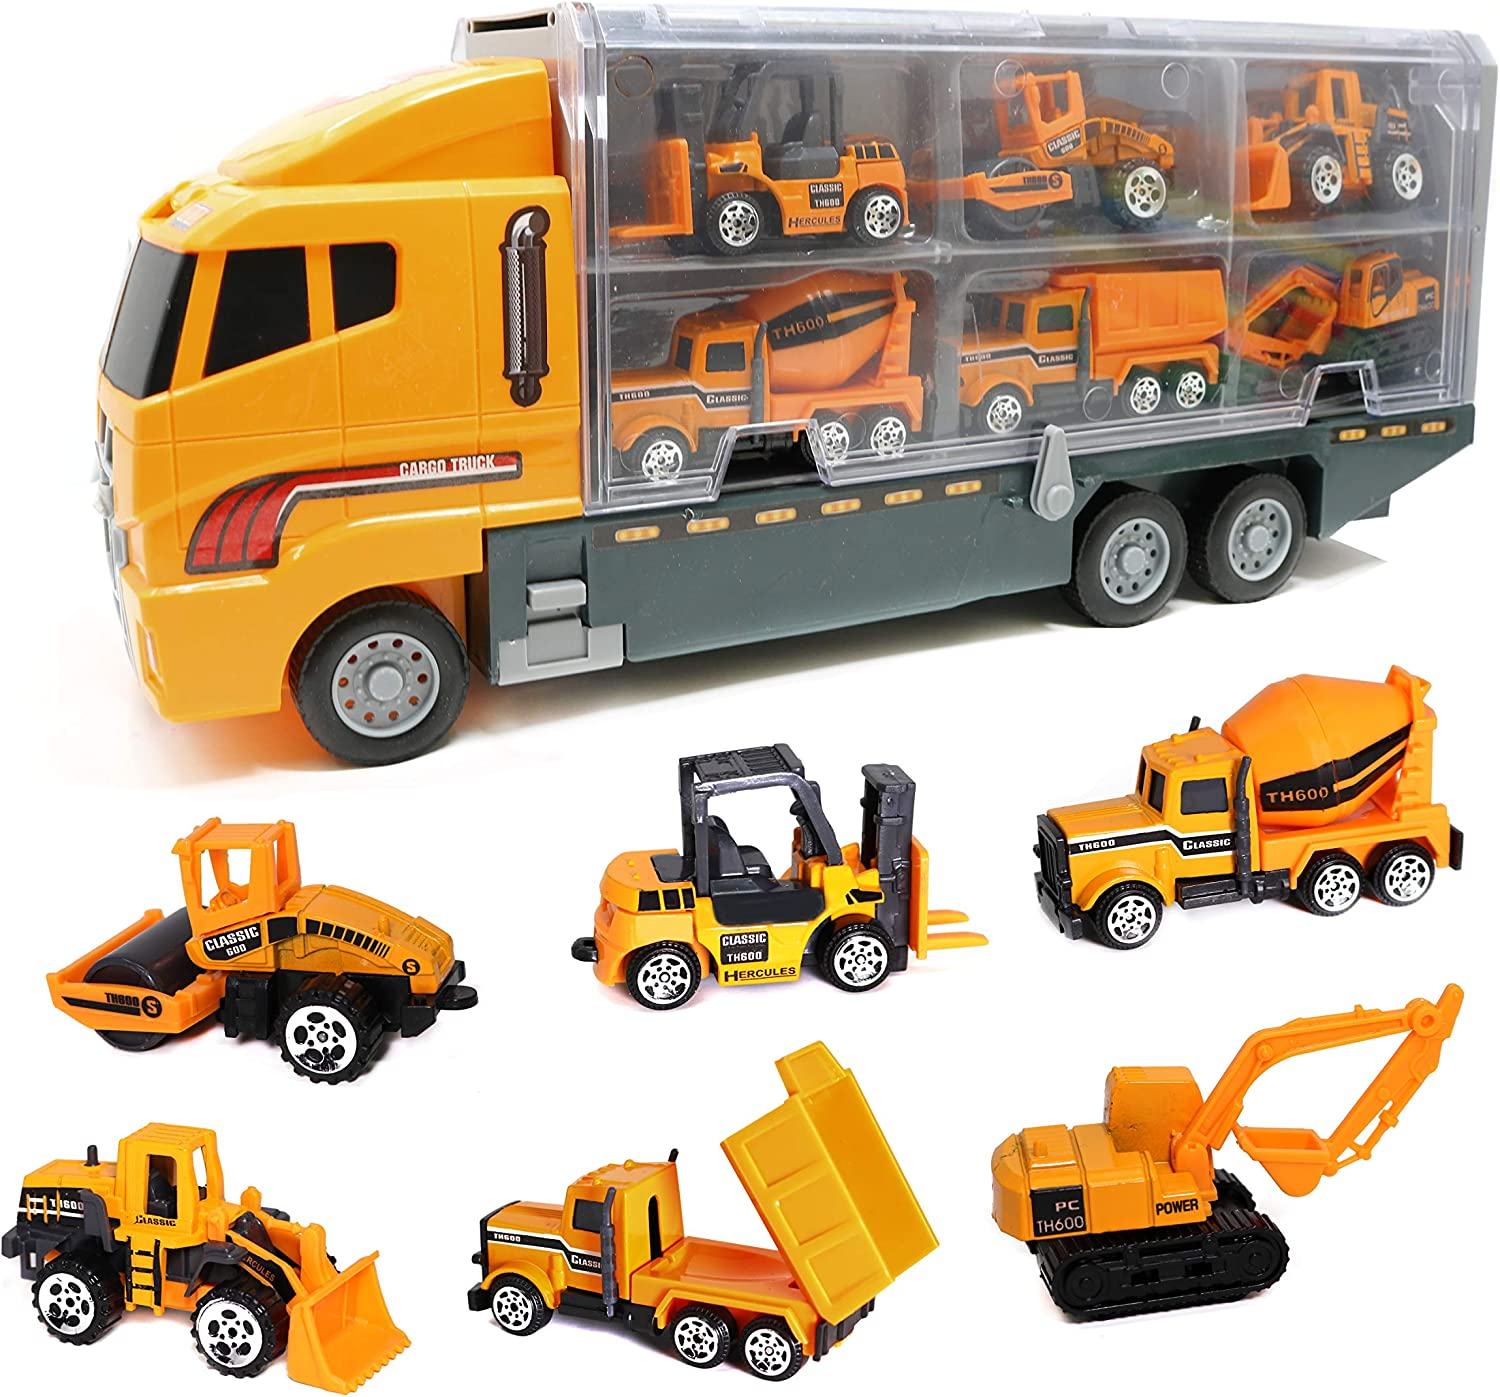 Smart Novelty Die Cast Construction Trucks Vehicles Toy Cars Play Set in Carrier Truck - 7 in 1 Transport Truck Construction Car Set for Kids Gifts